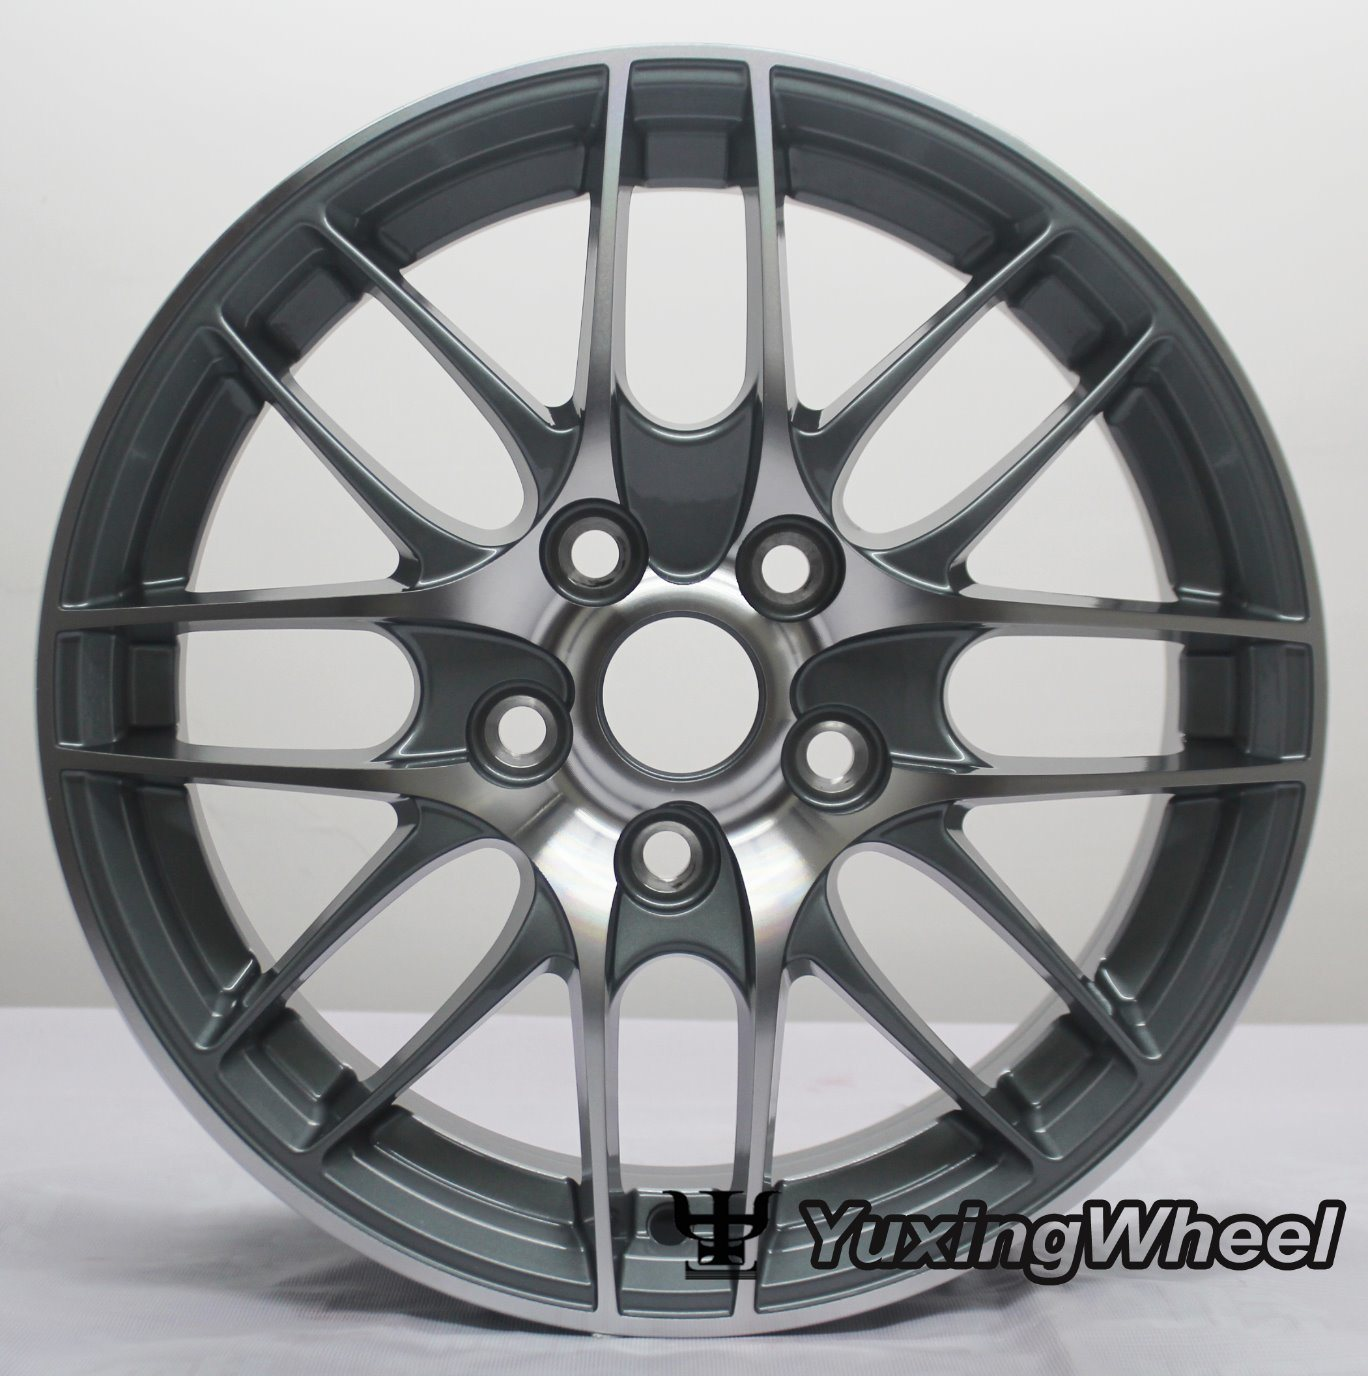 Matt Black Alloy Wheel Car Parts 15 Inch with ISO/Ts 16949: 2009